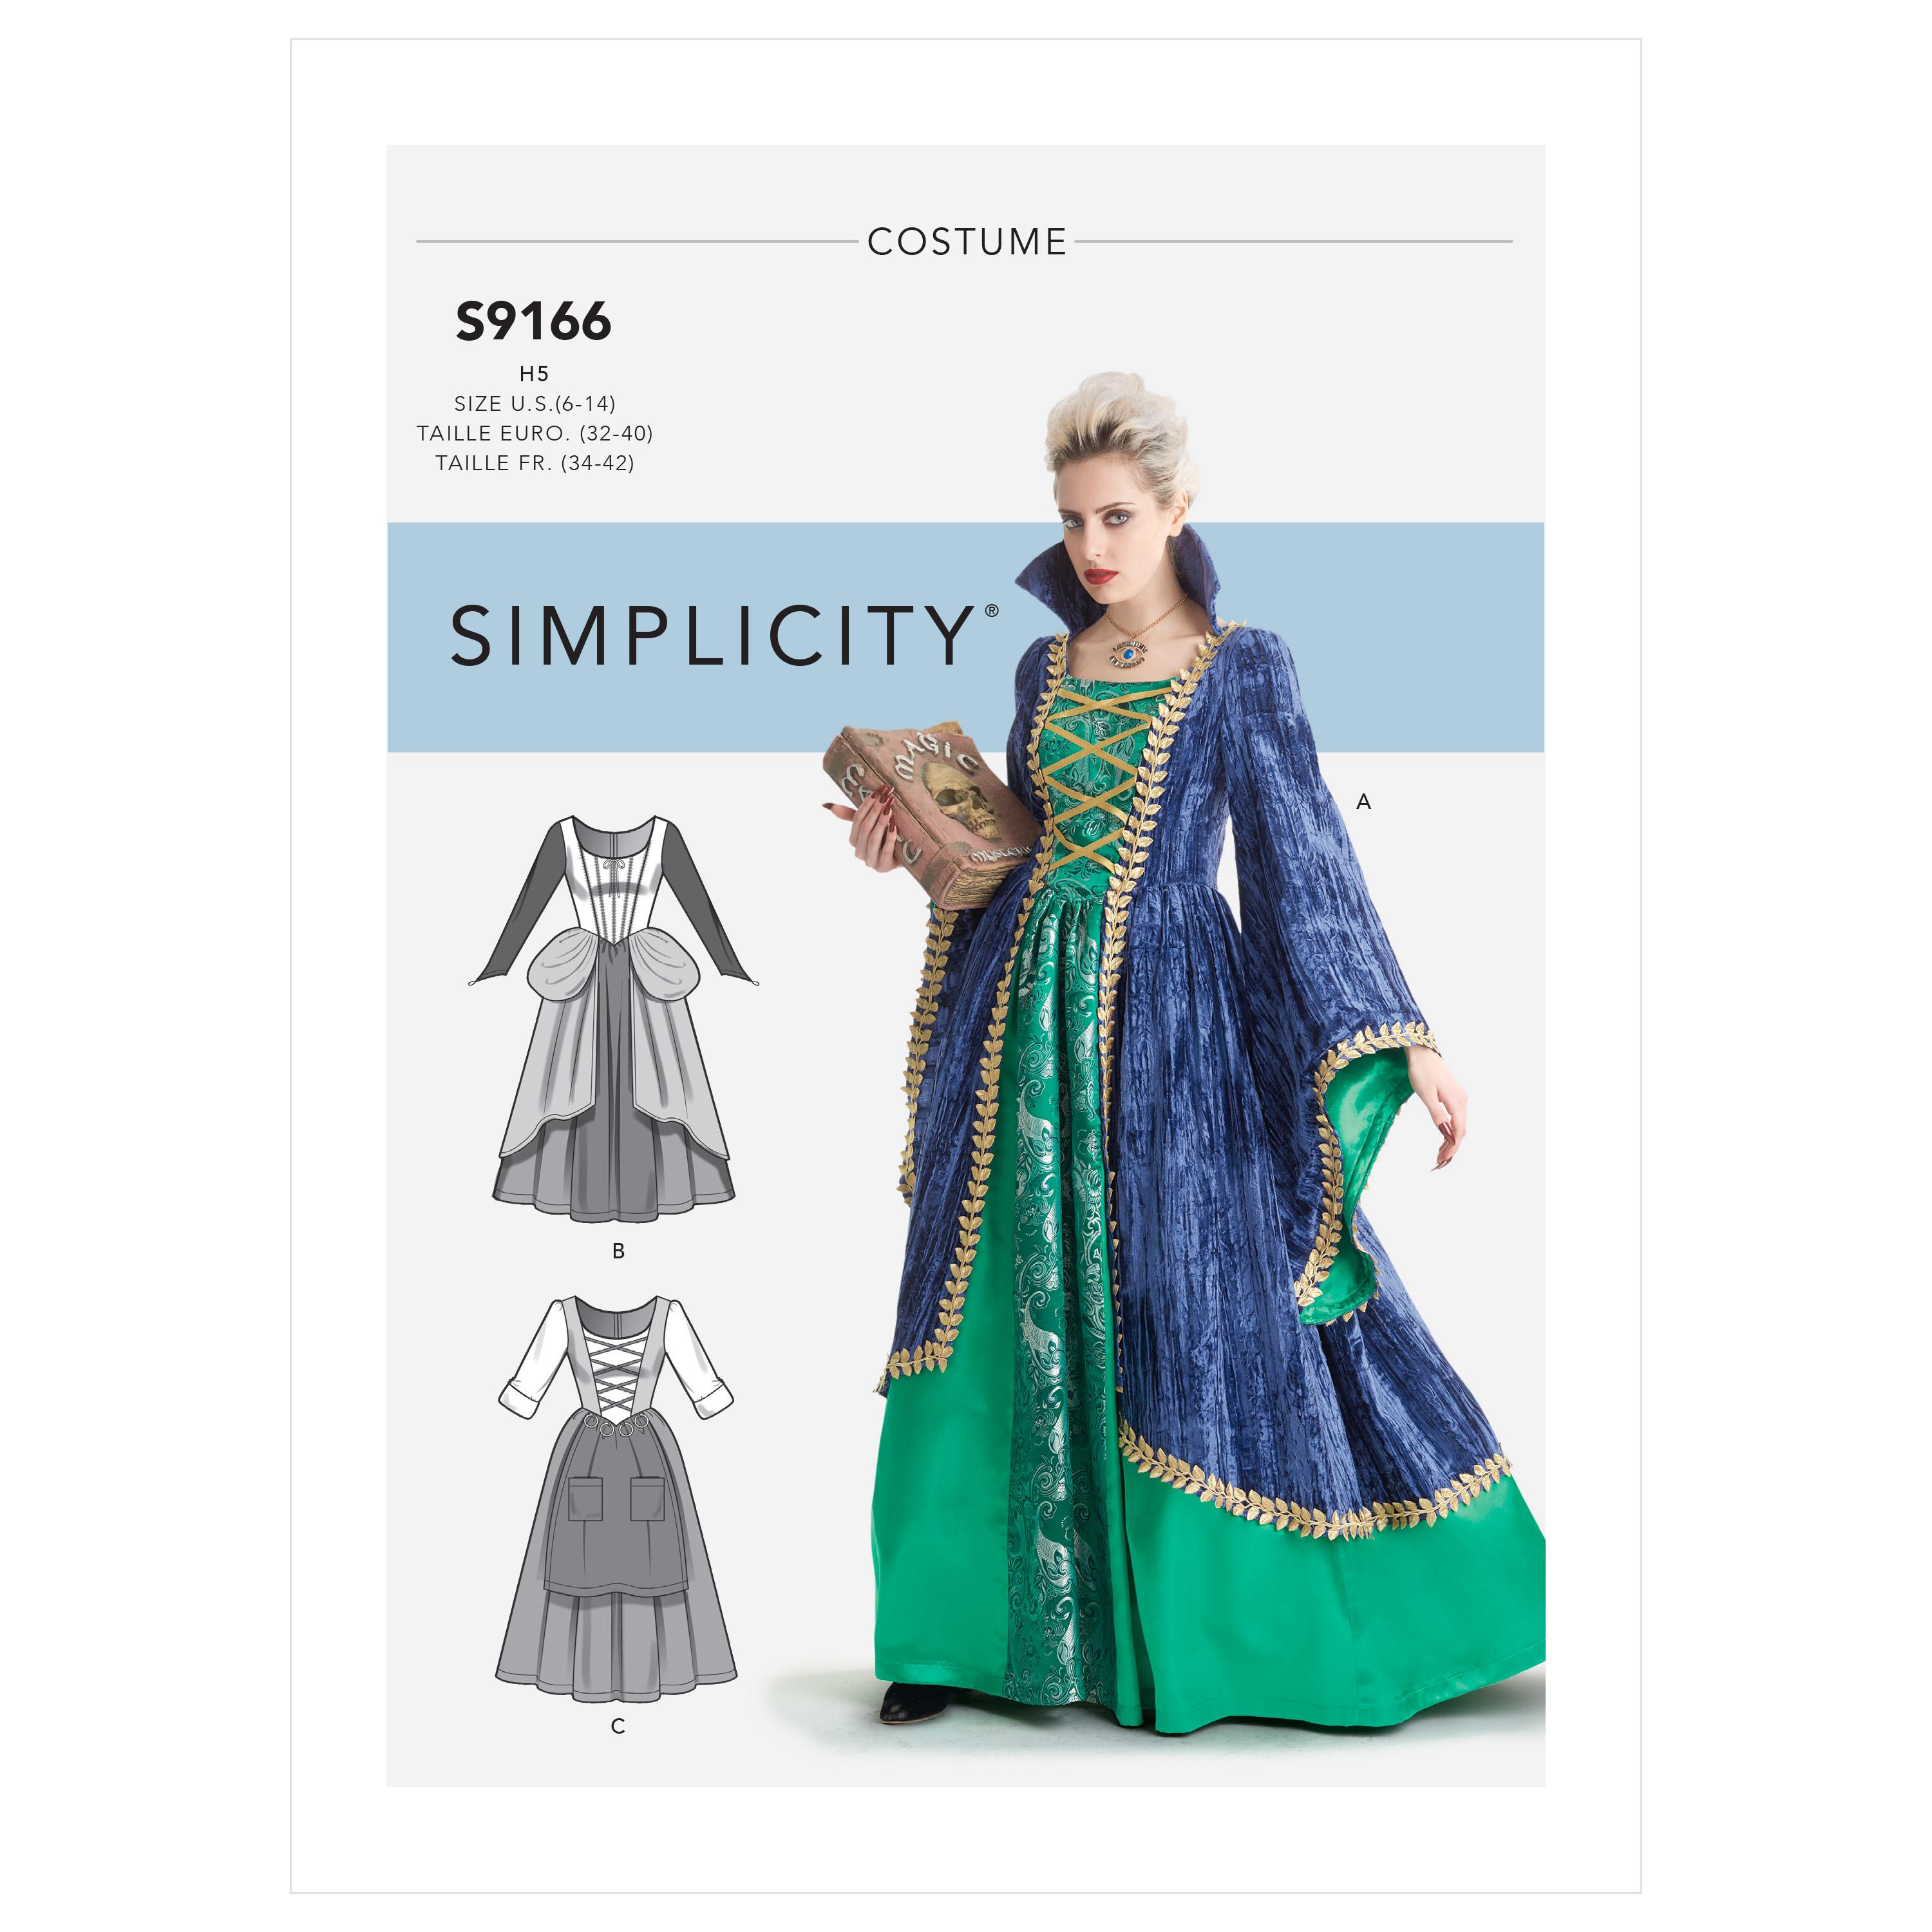 Simplicity S9166 Misses' Costumes